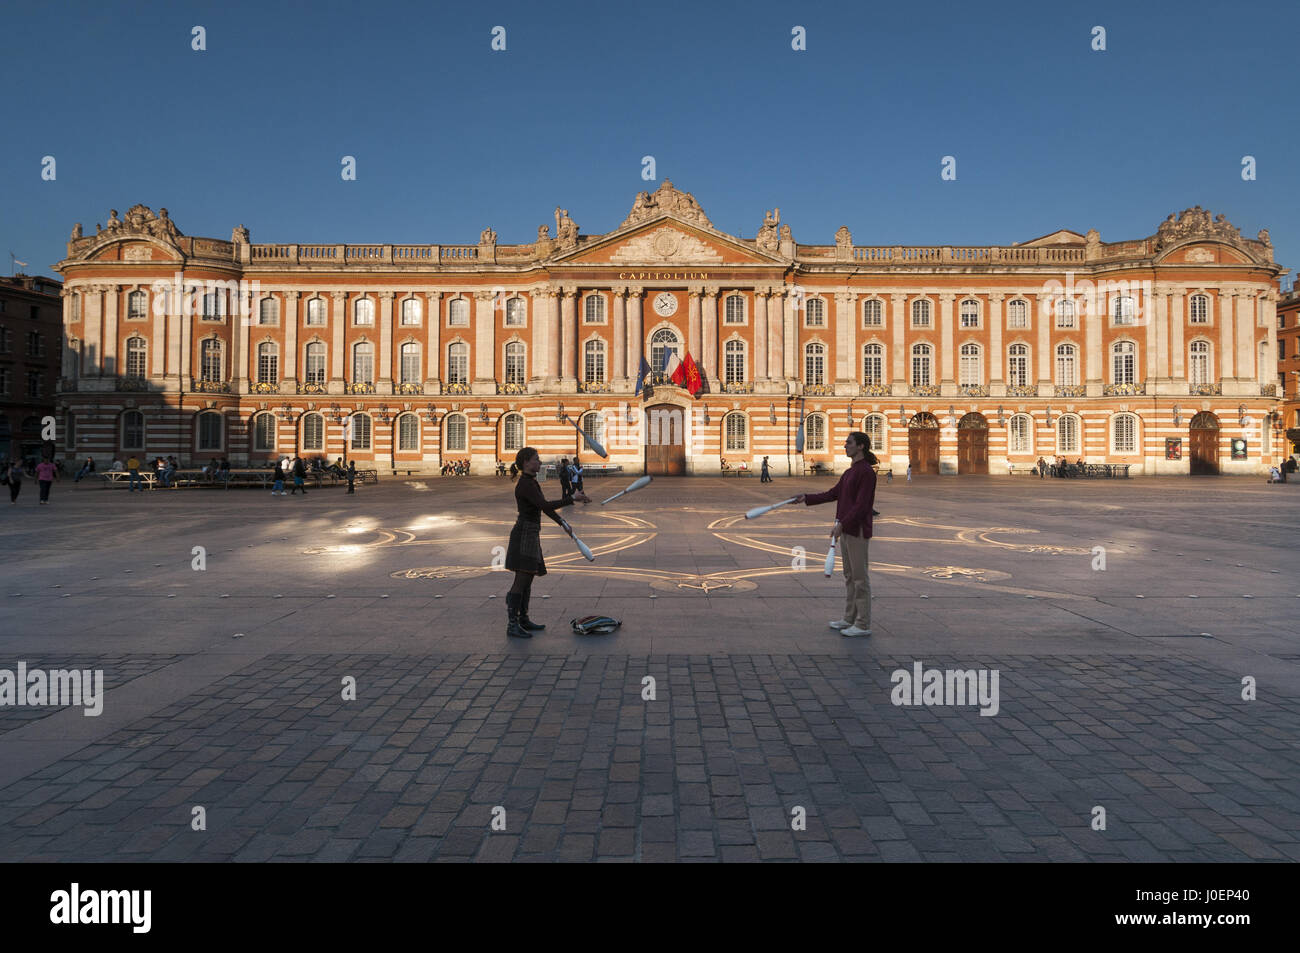 France, Toulouse, Capitole with jugglers - Stock Image